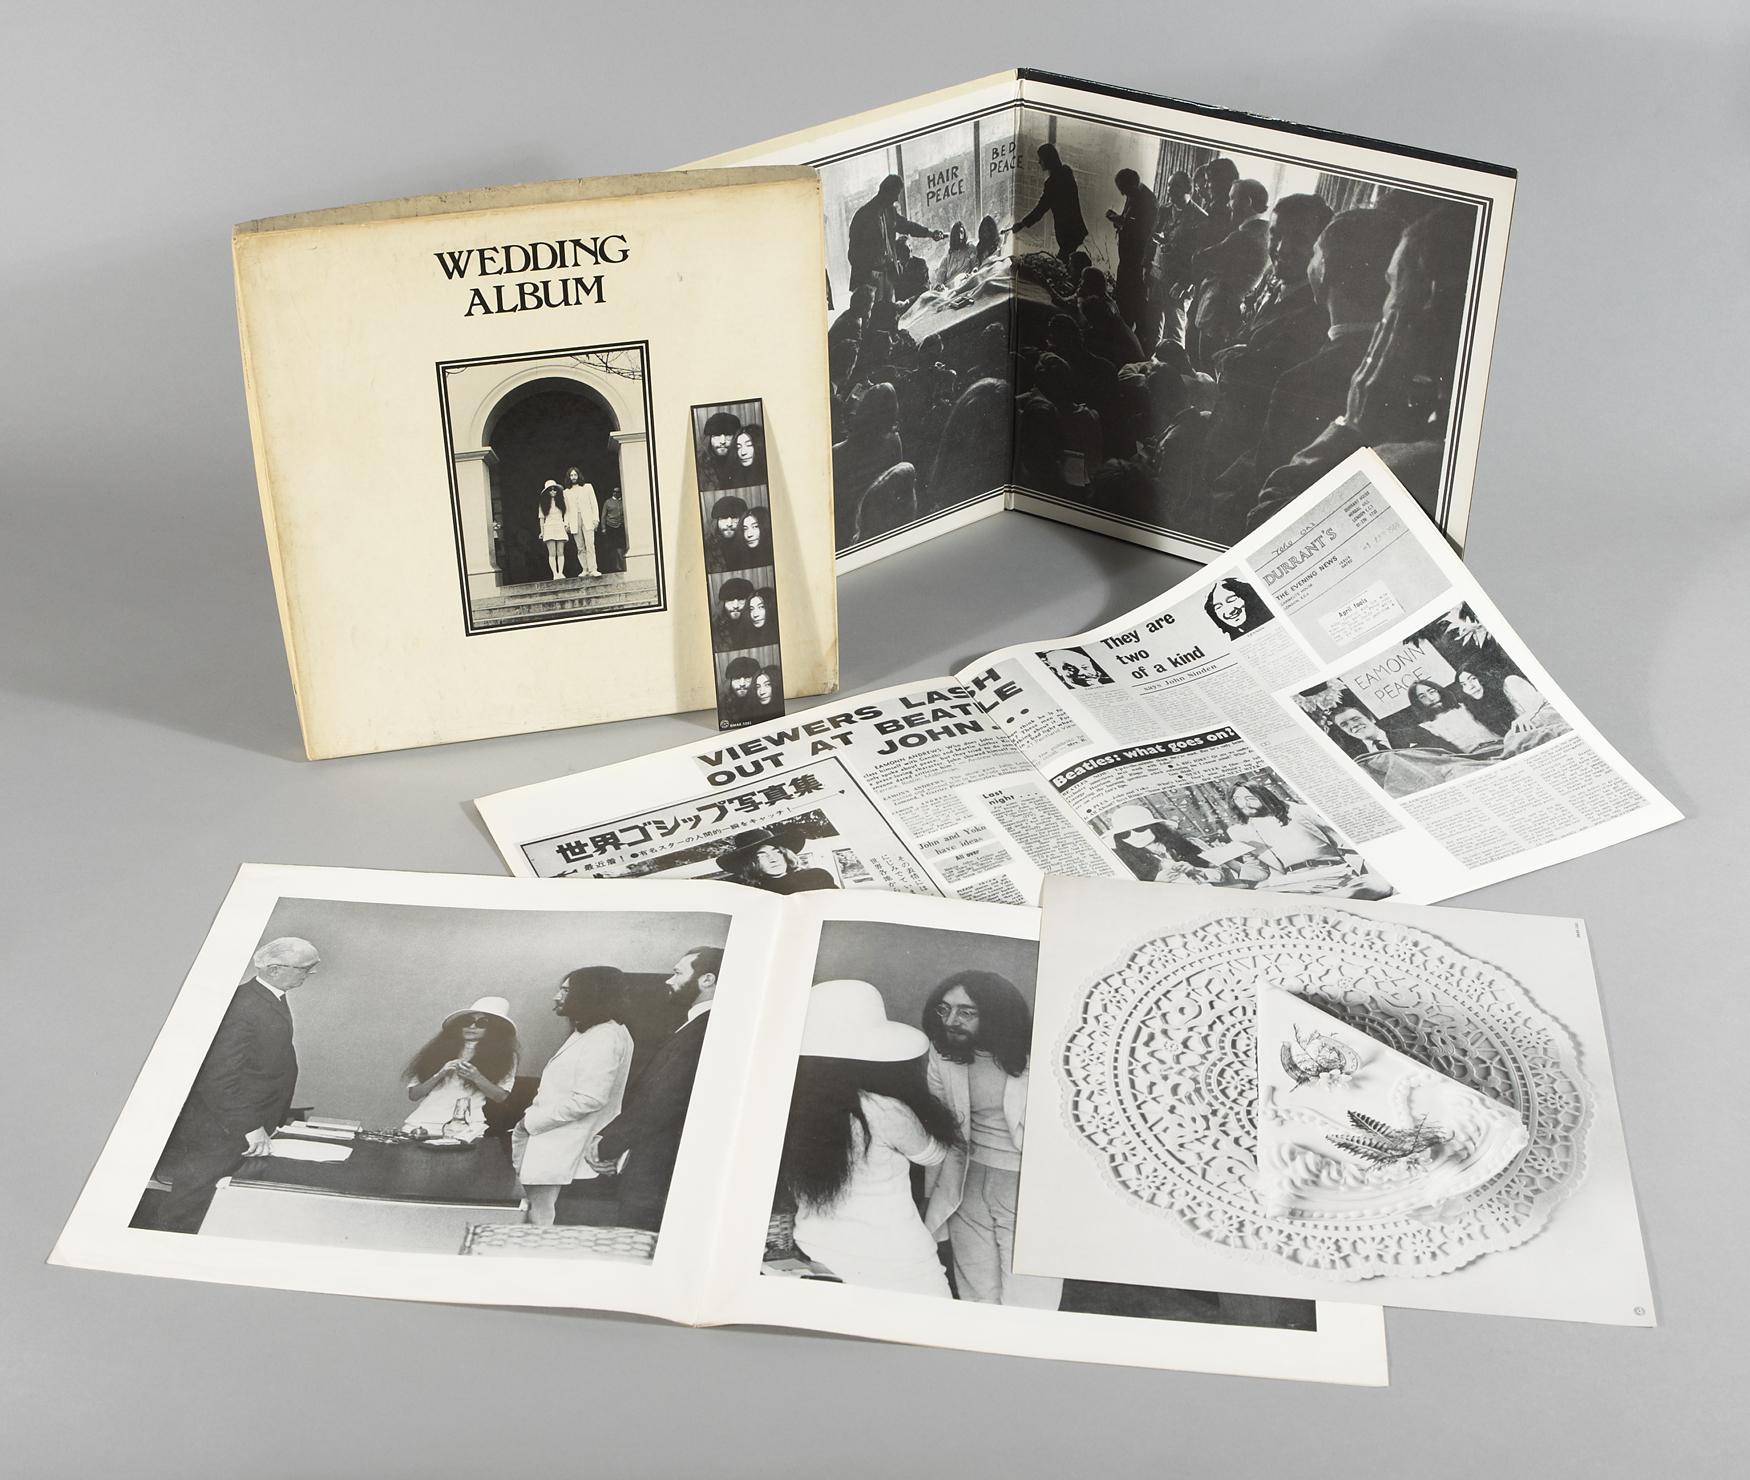 John Lennon And Yoko Ono The Wedding Album 1969 At Whyte S Auctions Whyte S Irish Art Collectibles